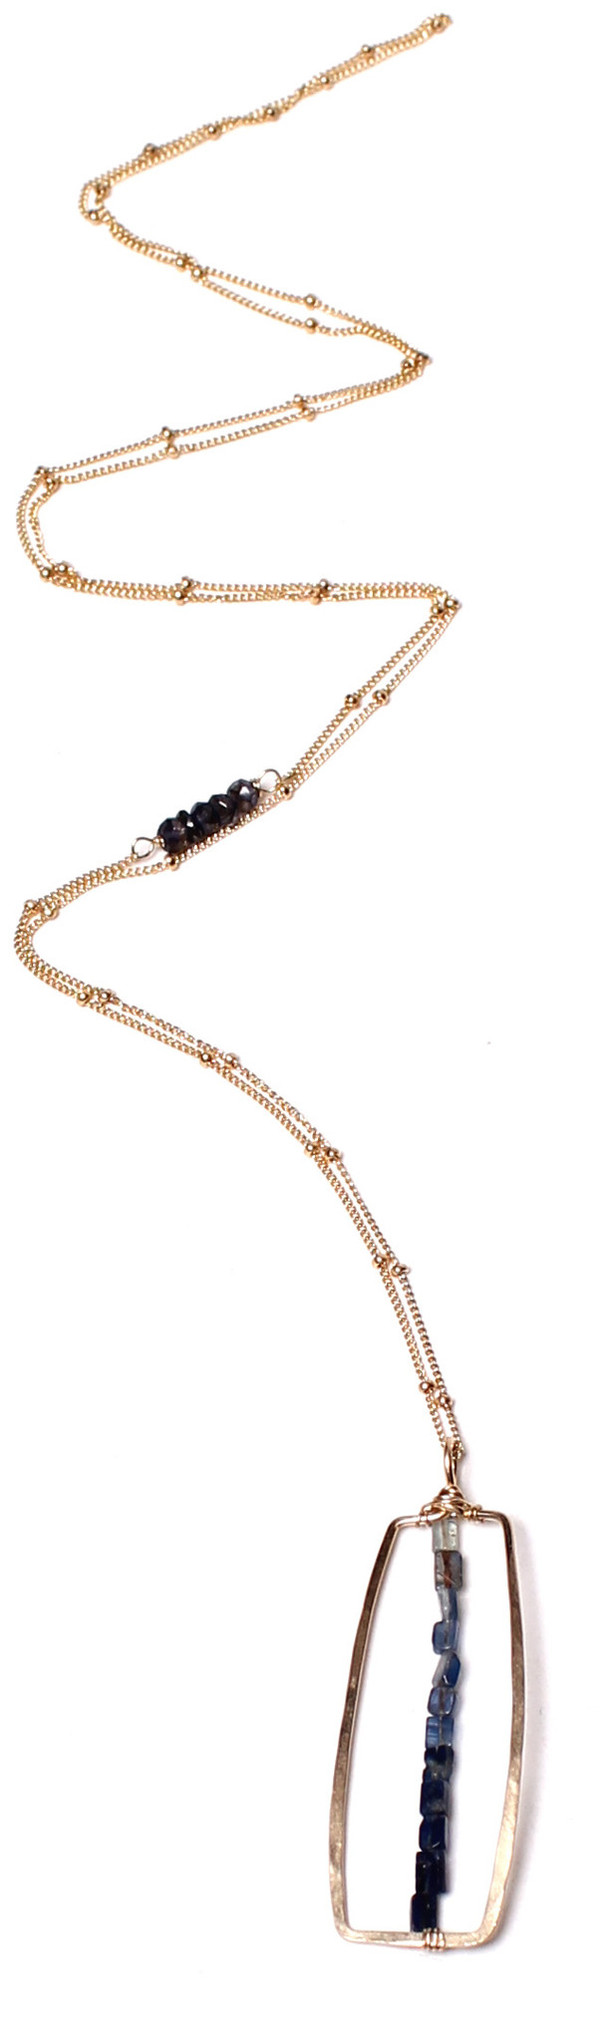 James and Jezebelle Iolite Necklace